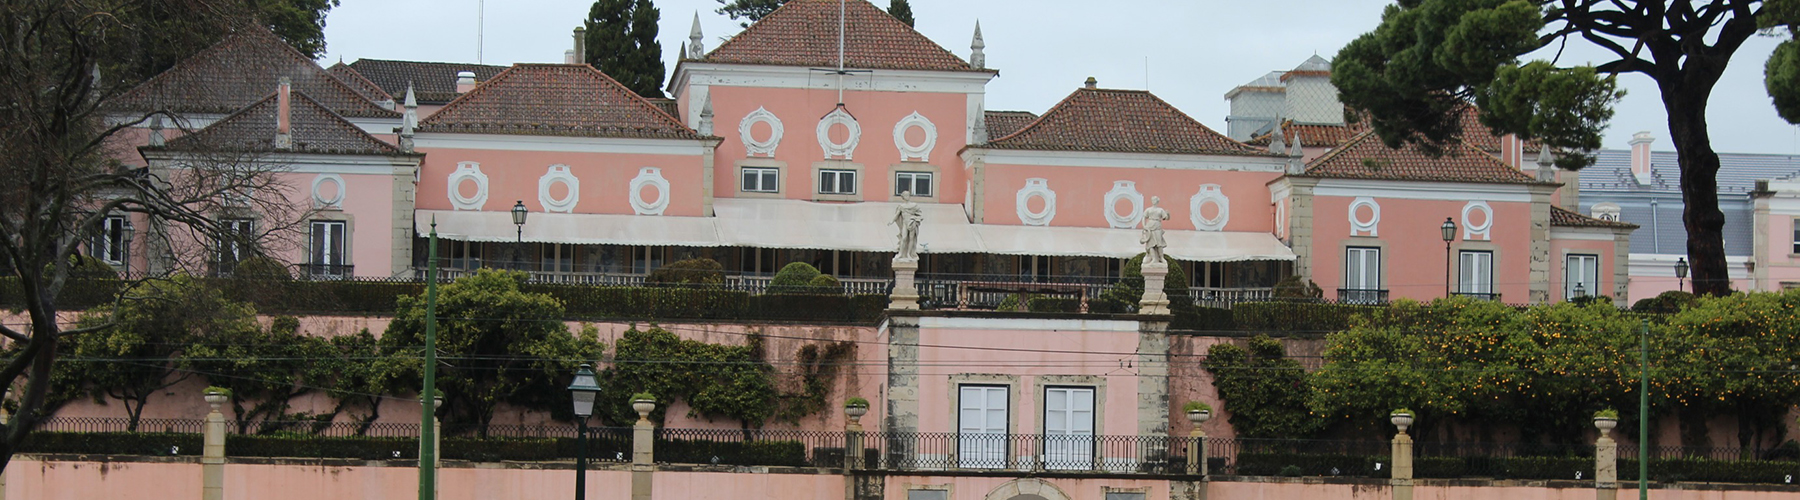 Lisbon – Hostels close to Belém Palace. Maps for Lisbon, Photos and Reviews for each hostel in Lisbon.